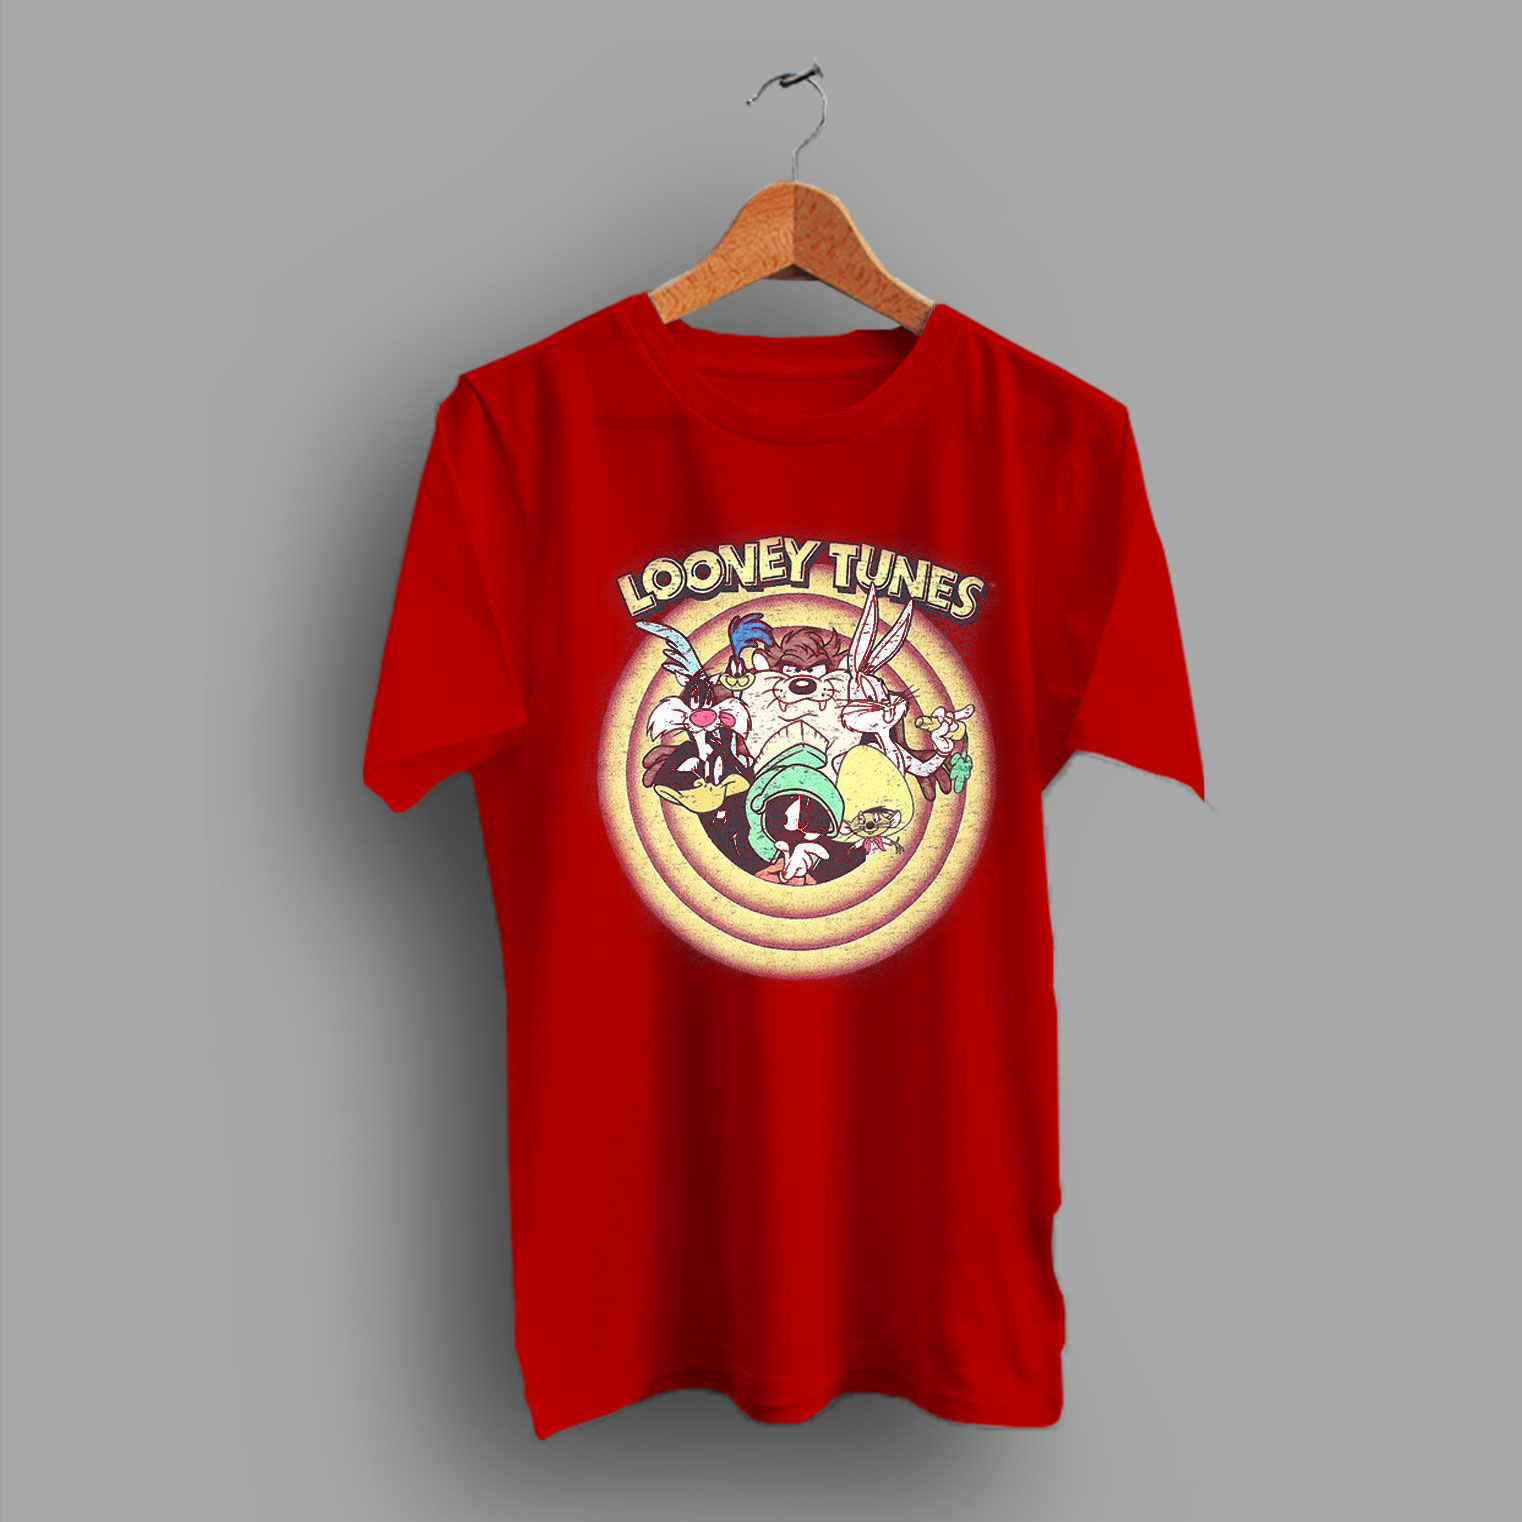 e576d015a Graphic Tee Vintage 90s Style Looney Tunes T Shirt - HotVero